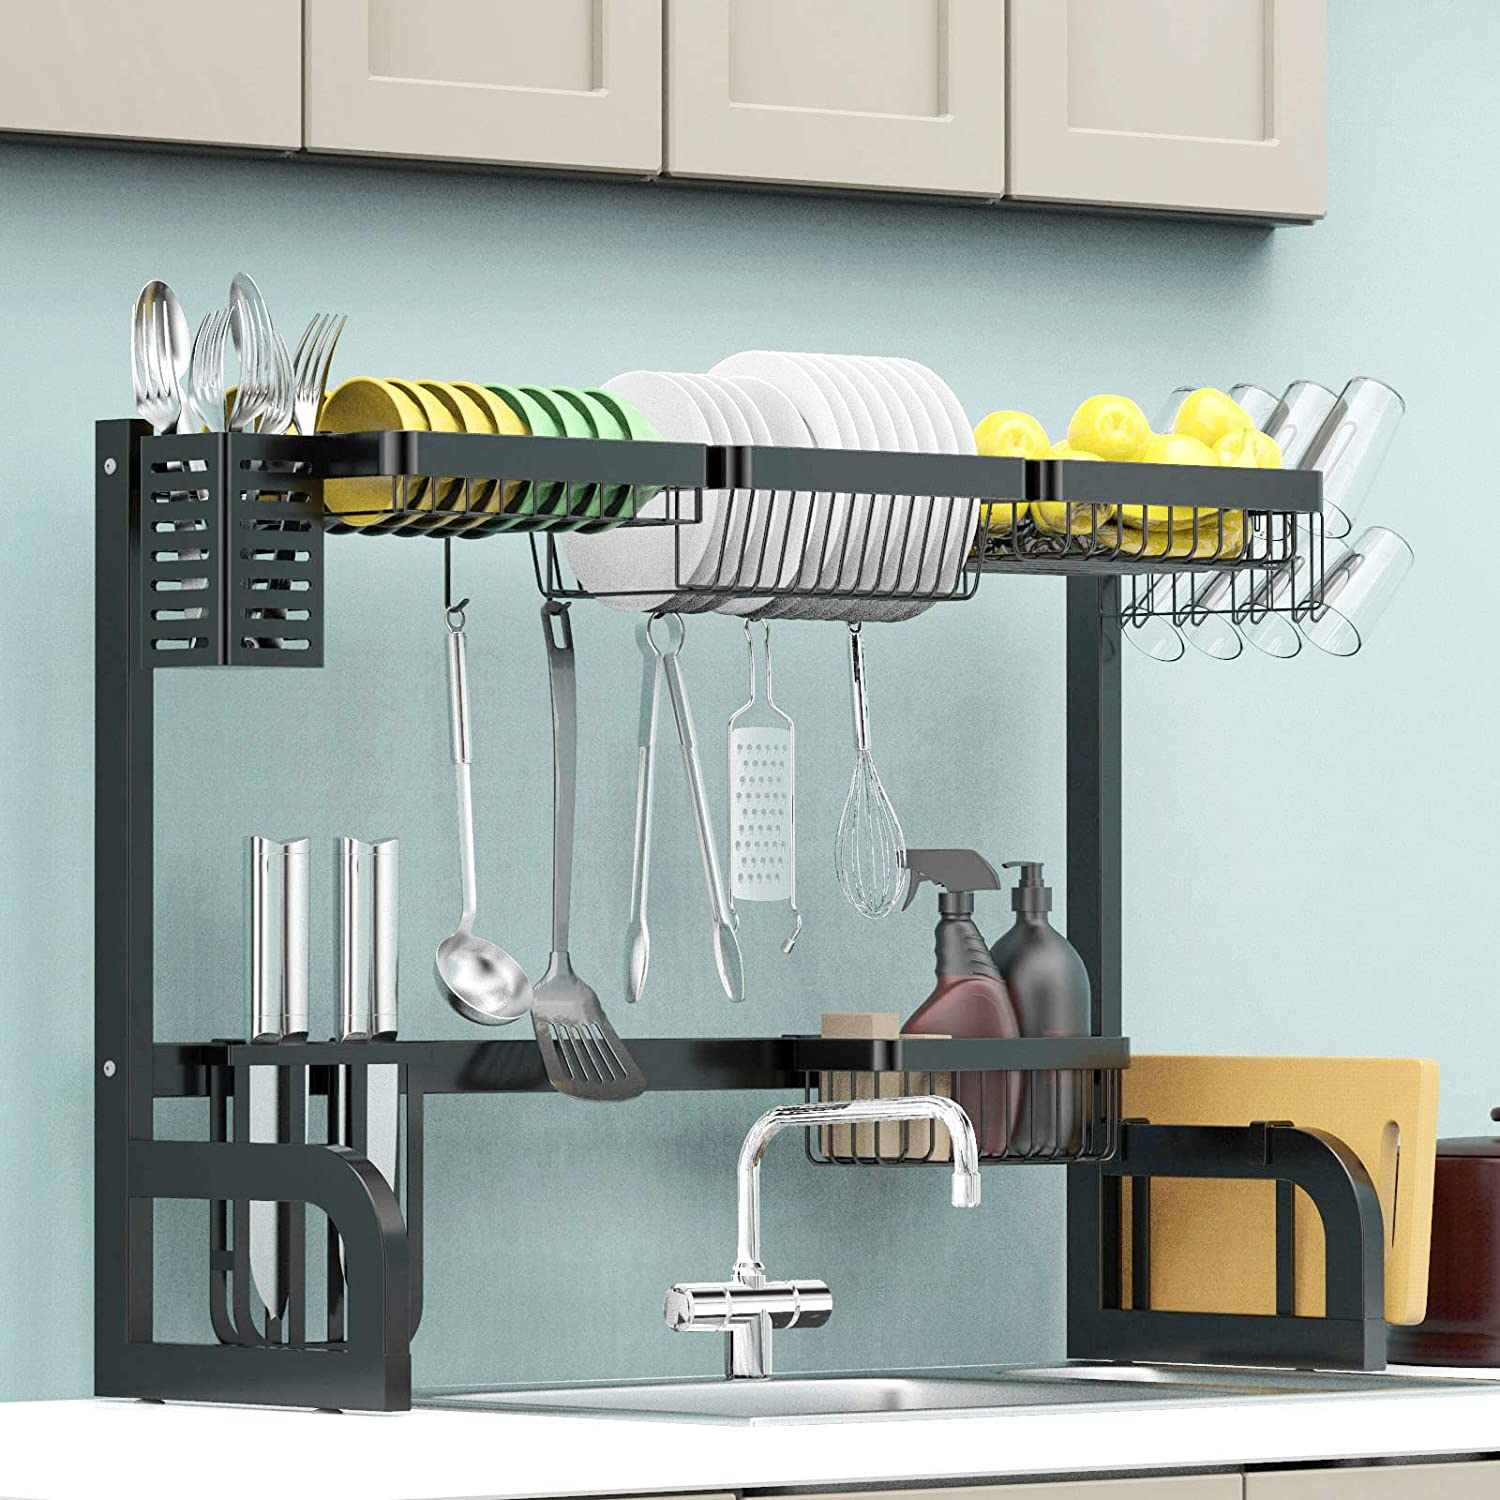 Over The Sink Dish Drying Max 86% OFF 2 service Tier Stainless Steel Rack